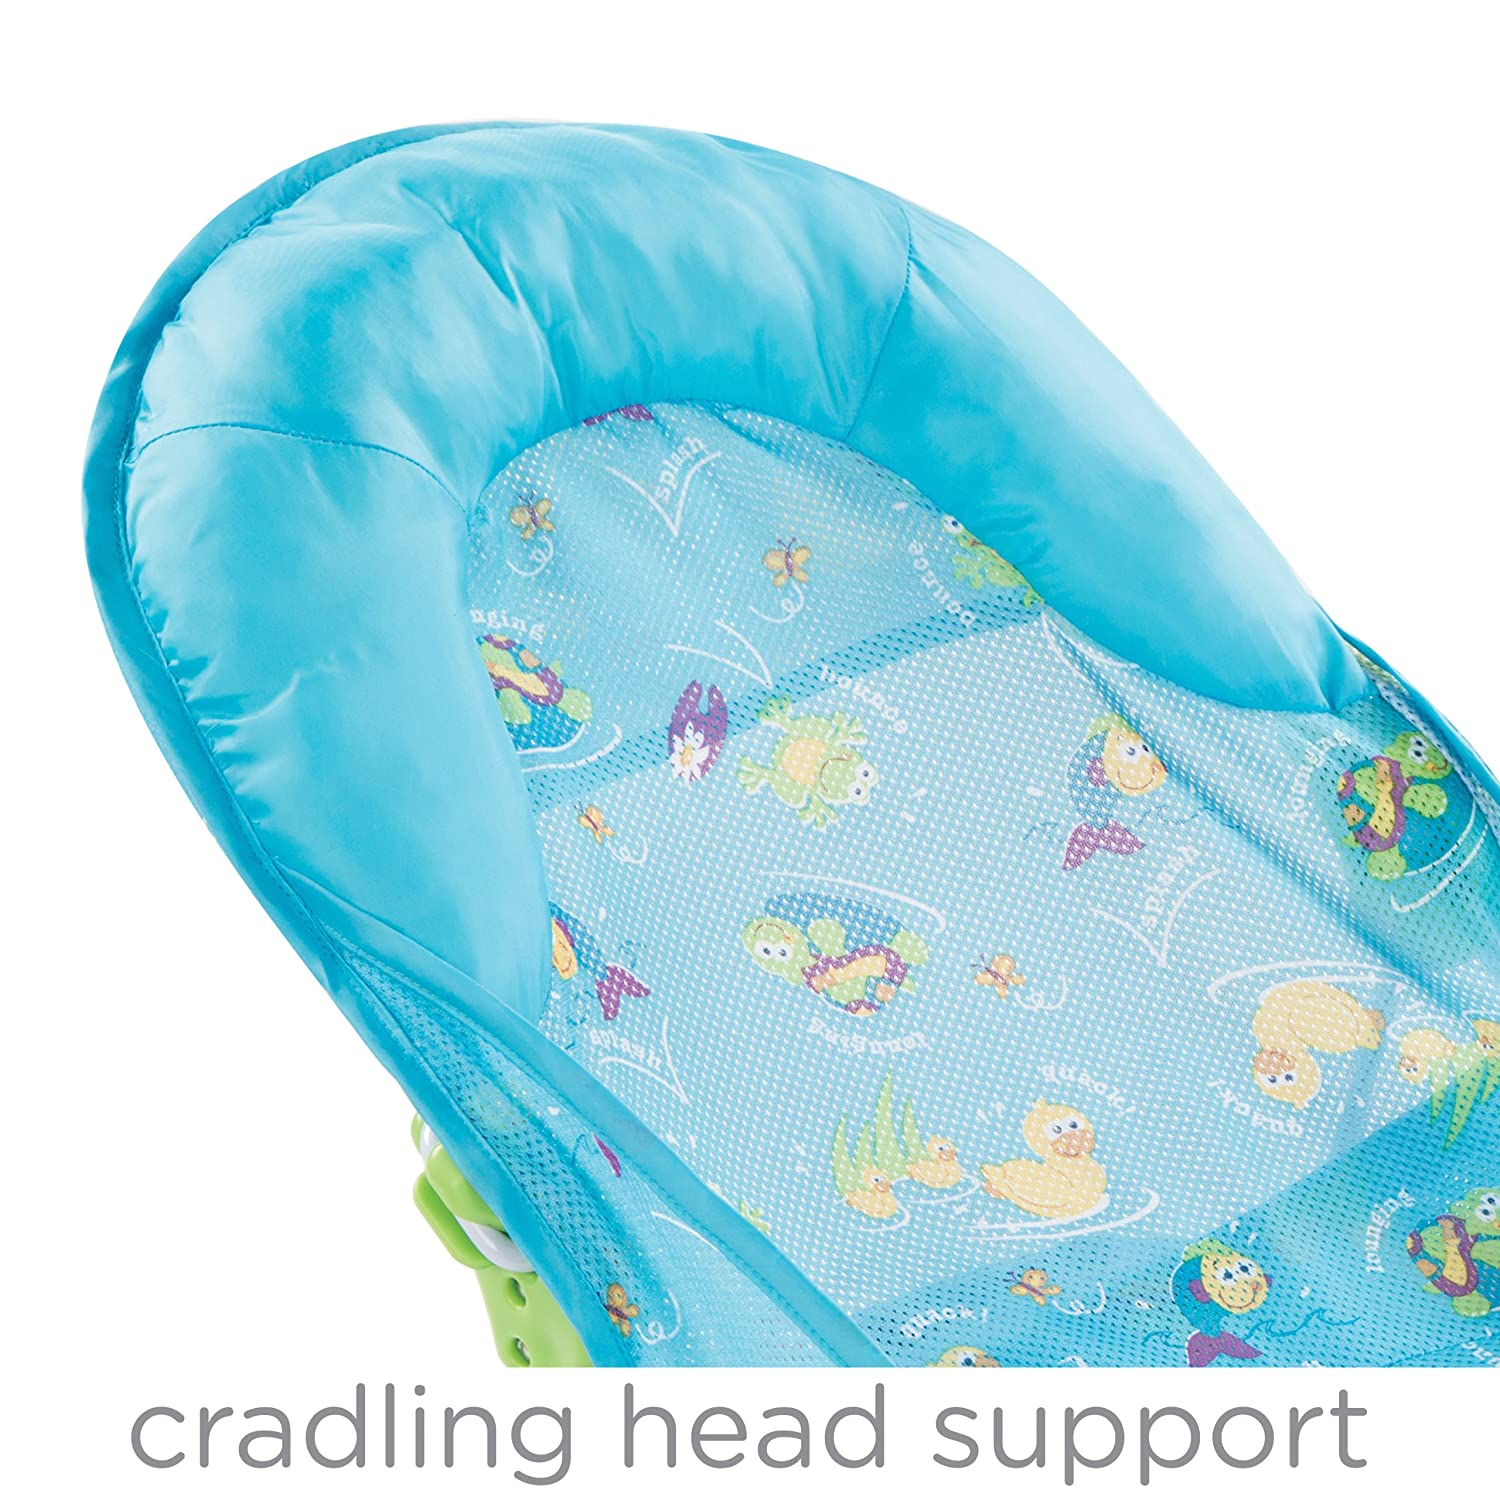 Amazon.com : Summer Infant Deluxe Baby Bather, Blue : Baby Bathing ...